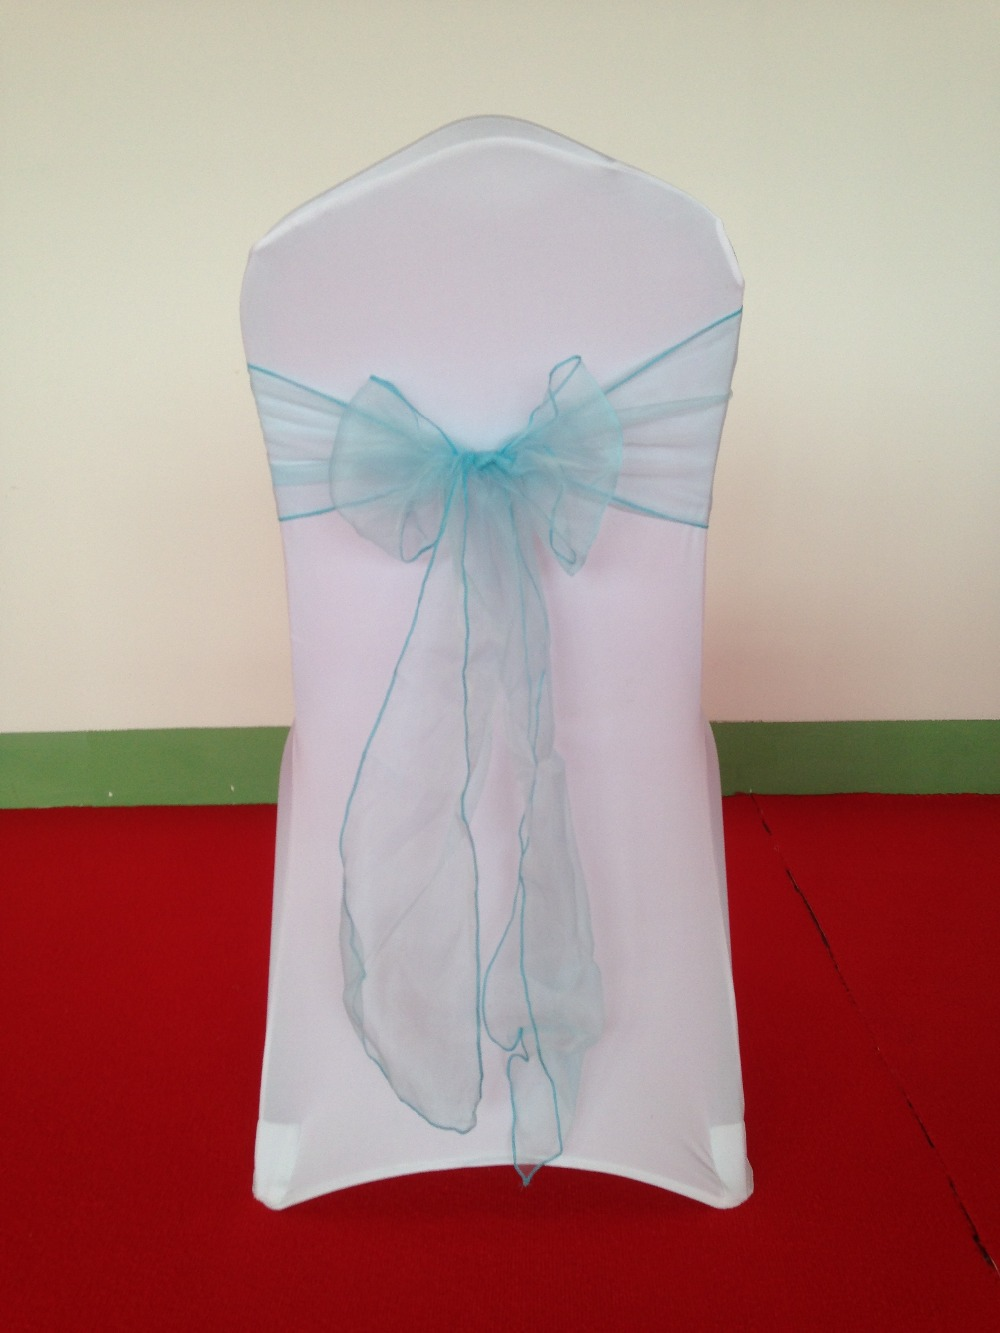 Tiffany Blue Chair Us 70 100pcs Lot Fancy Cheap Baby Blue Tiffany Blue Chair Sash Chair Bow Chair Ribbon In Sashes From Home Garden On Aliexpress Alibaba